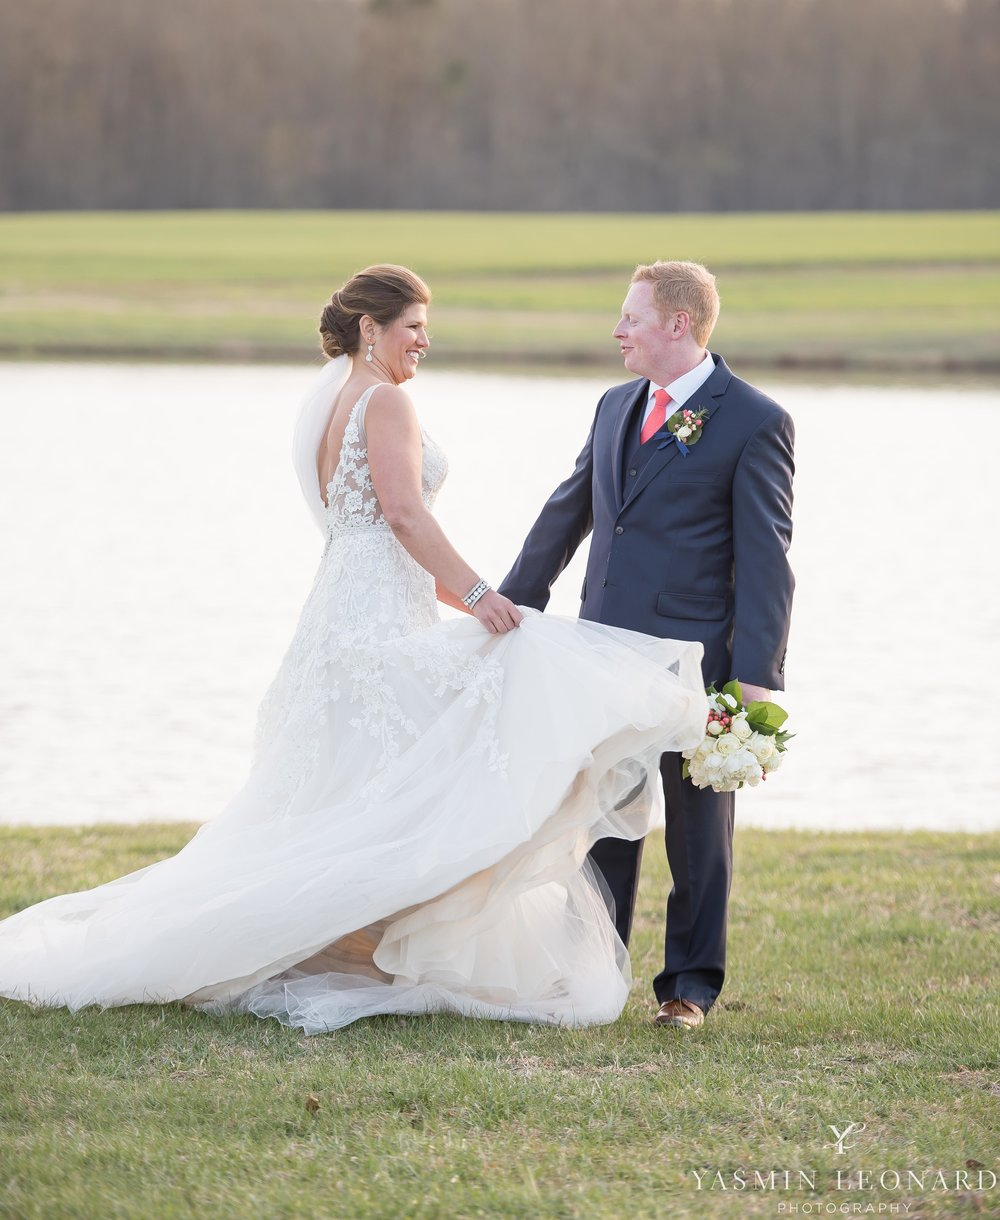 Adaumont Farm - Adaumont Farm Weddings - Trinity Weddings - NC Weddings - Yasmin Leonard Photography-46.jpg